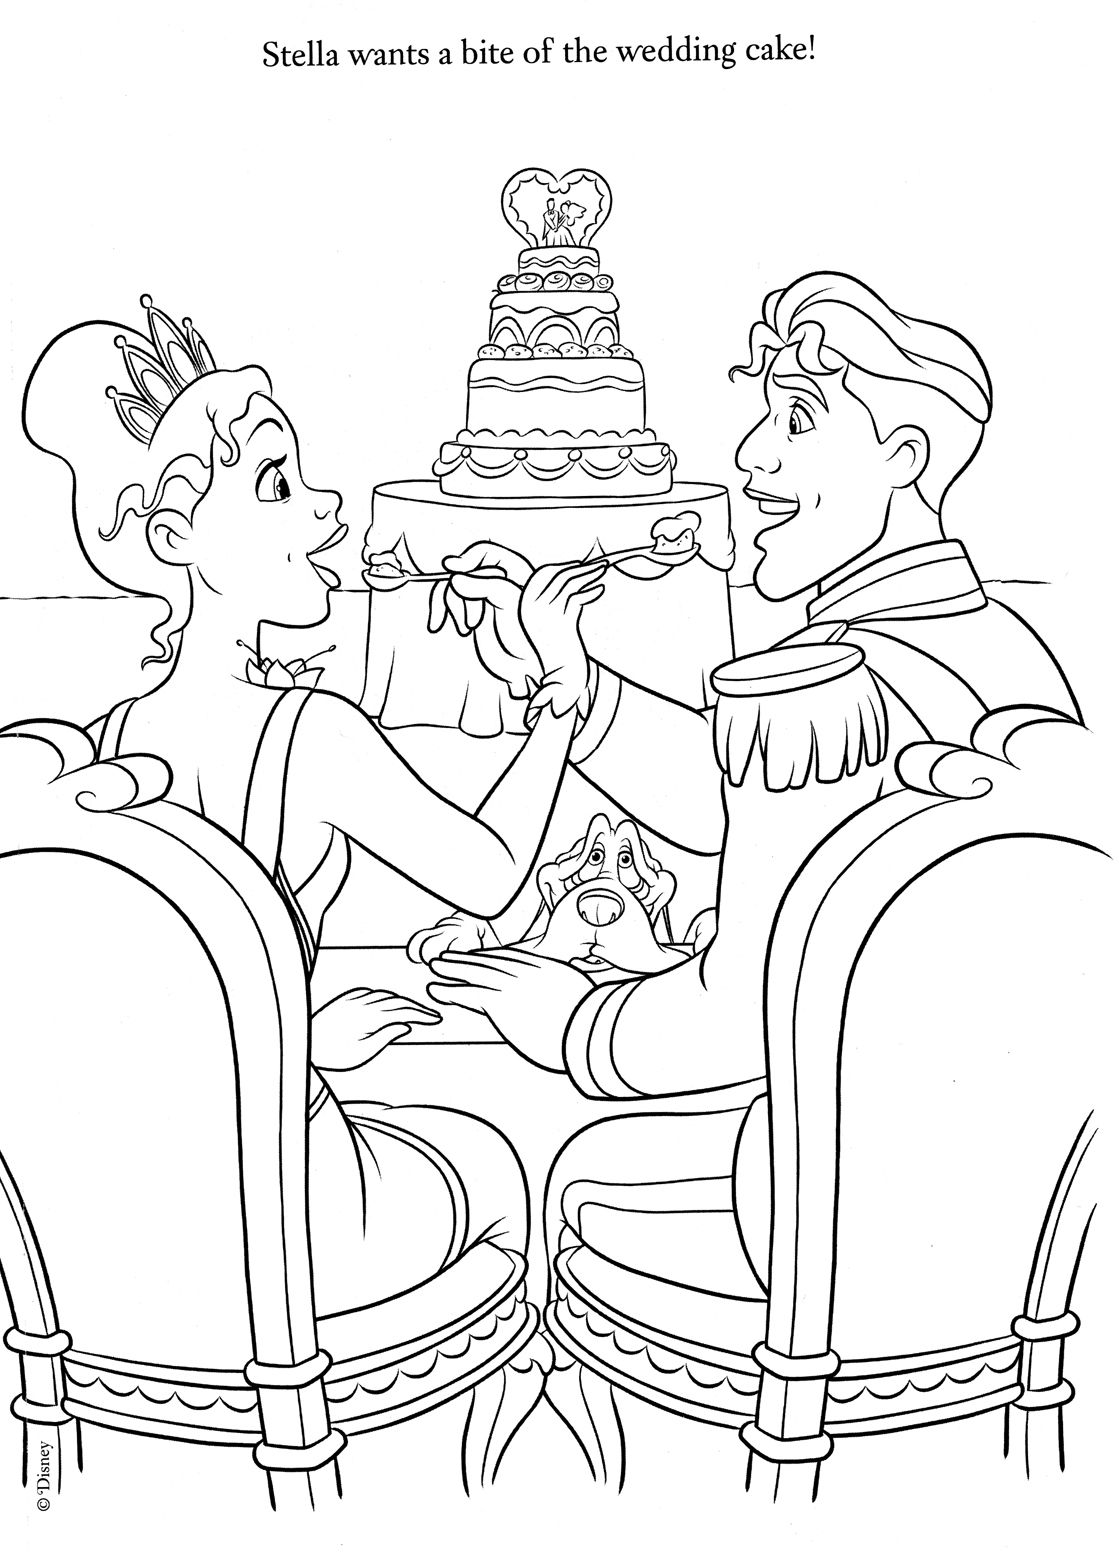 Disney Coloring Pages | Coloring pages (Printables) | Pinterest ...